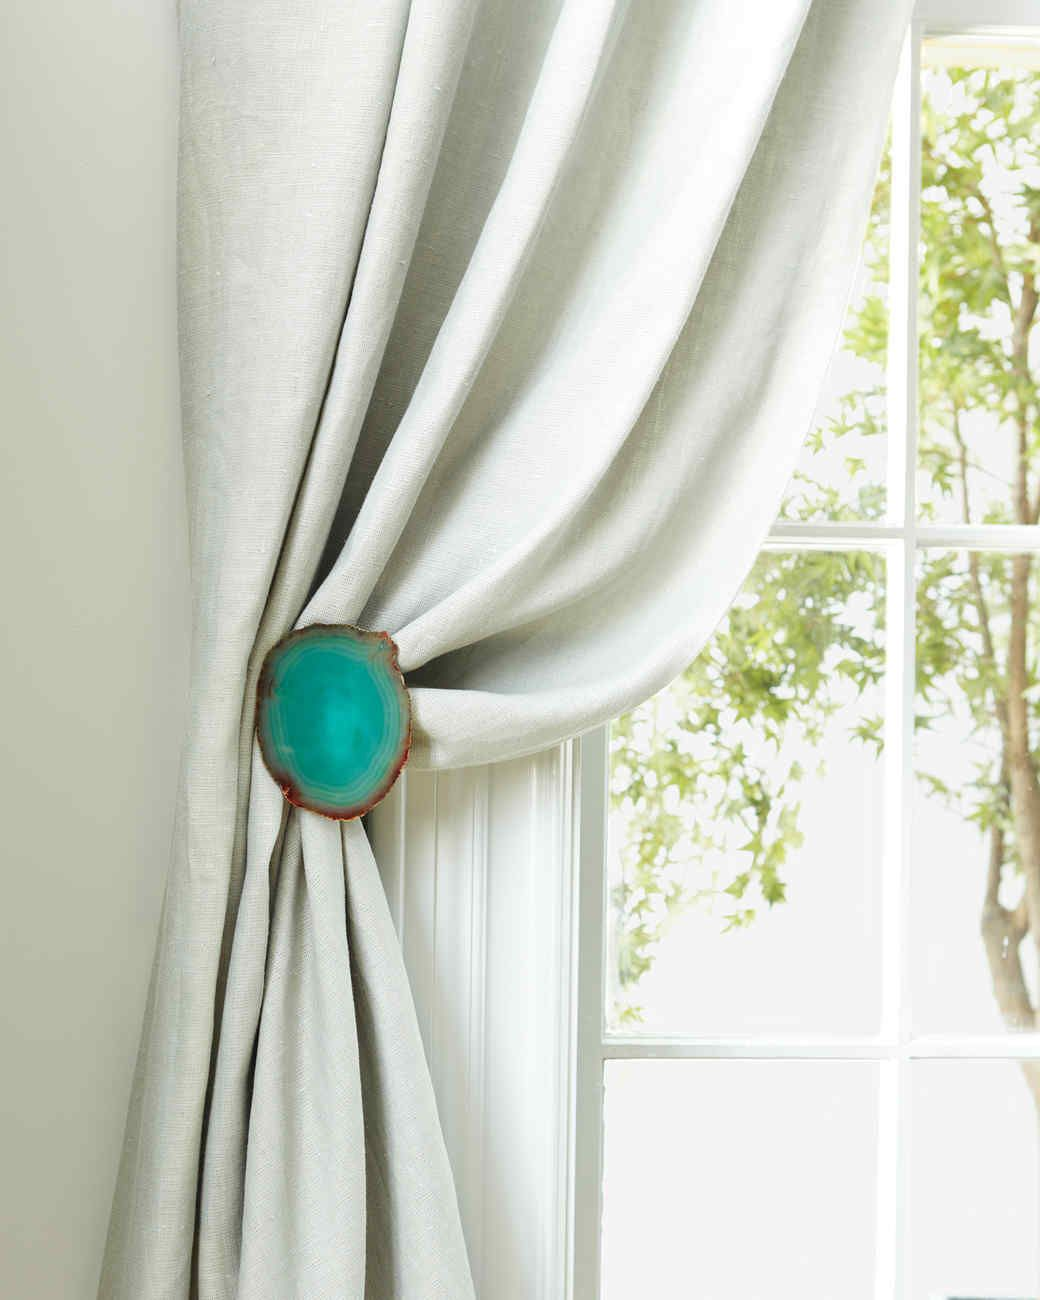 Curtain hardware tiebacks - Decorative Curtain Tiebacks